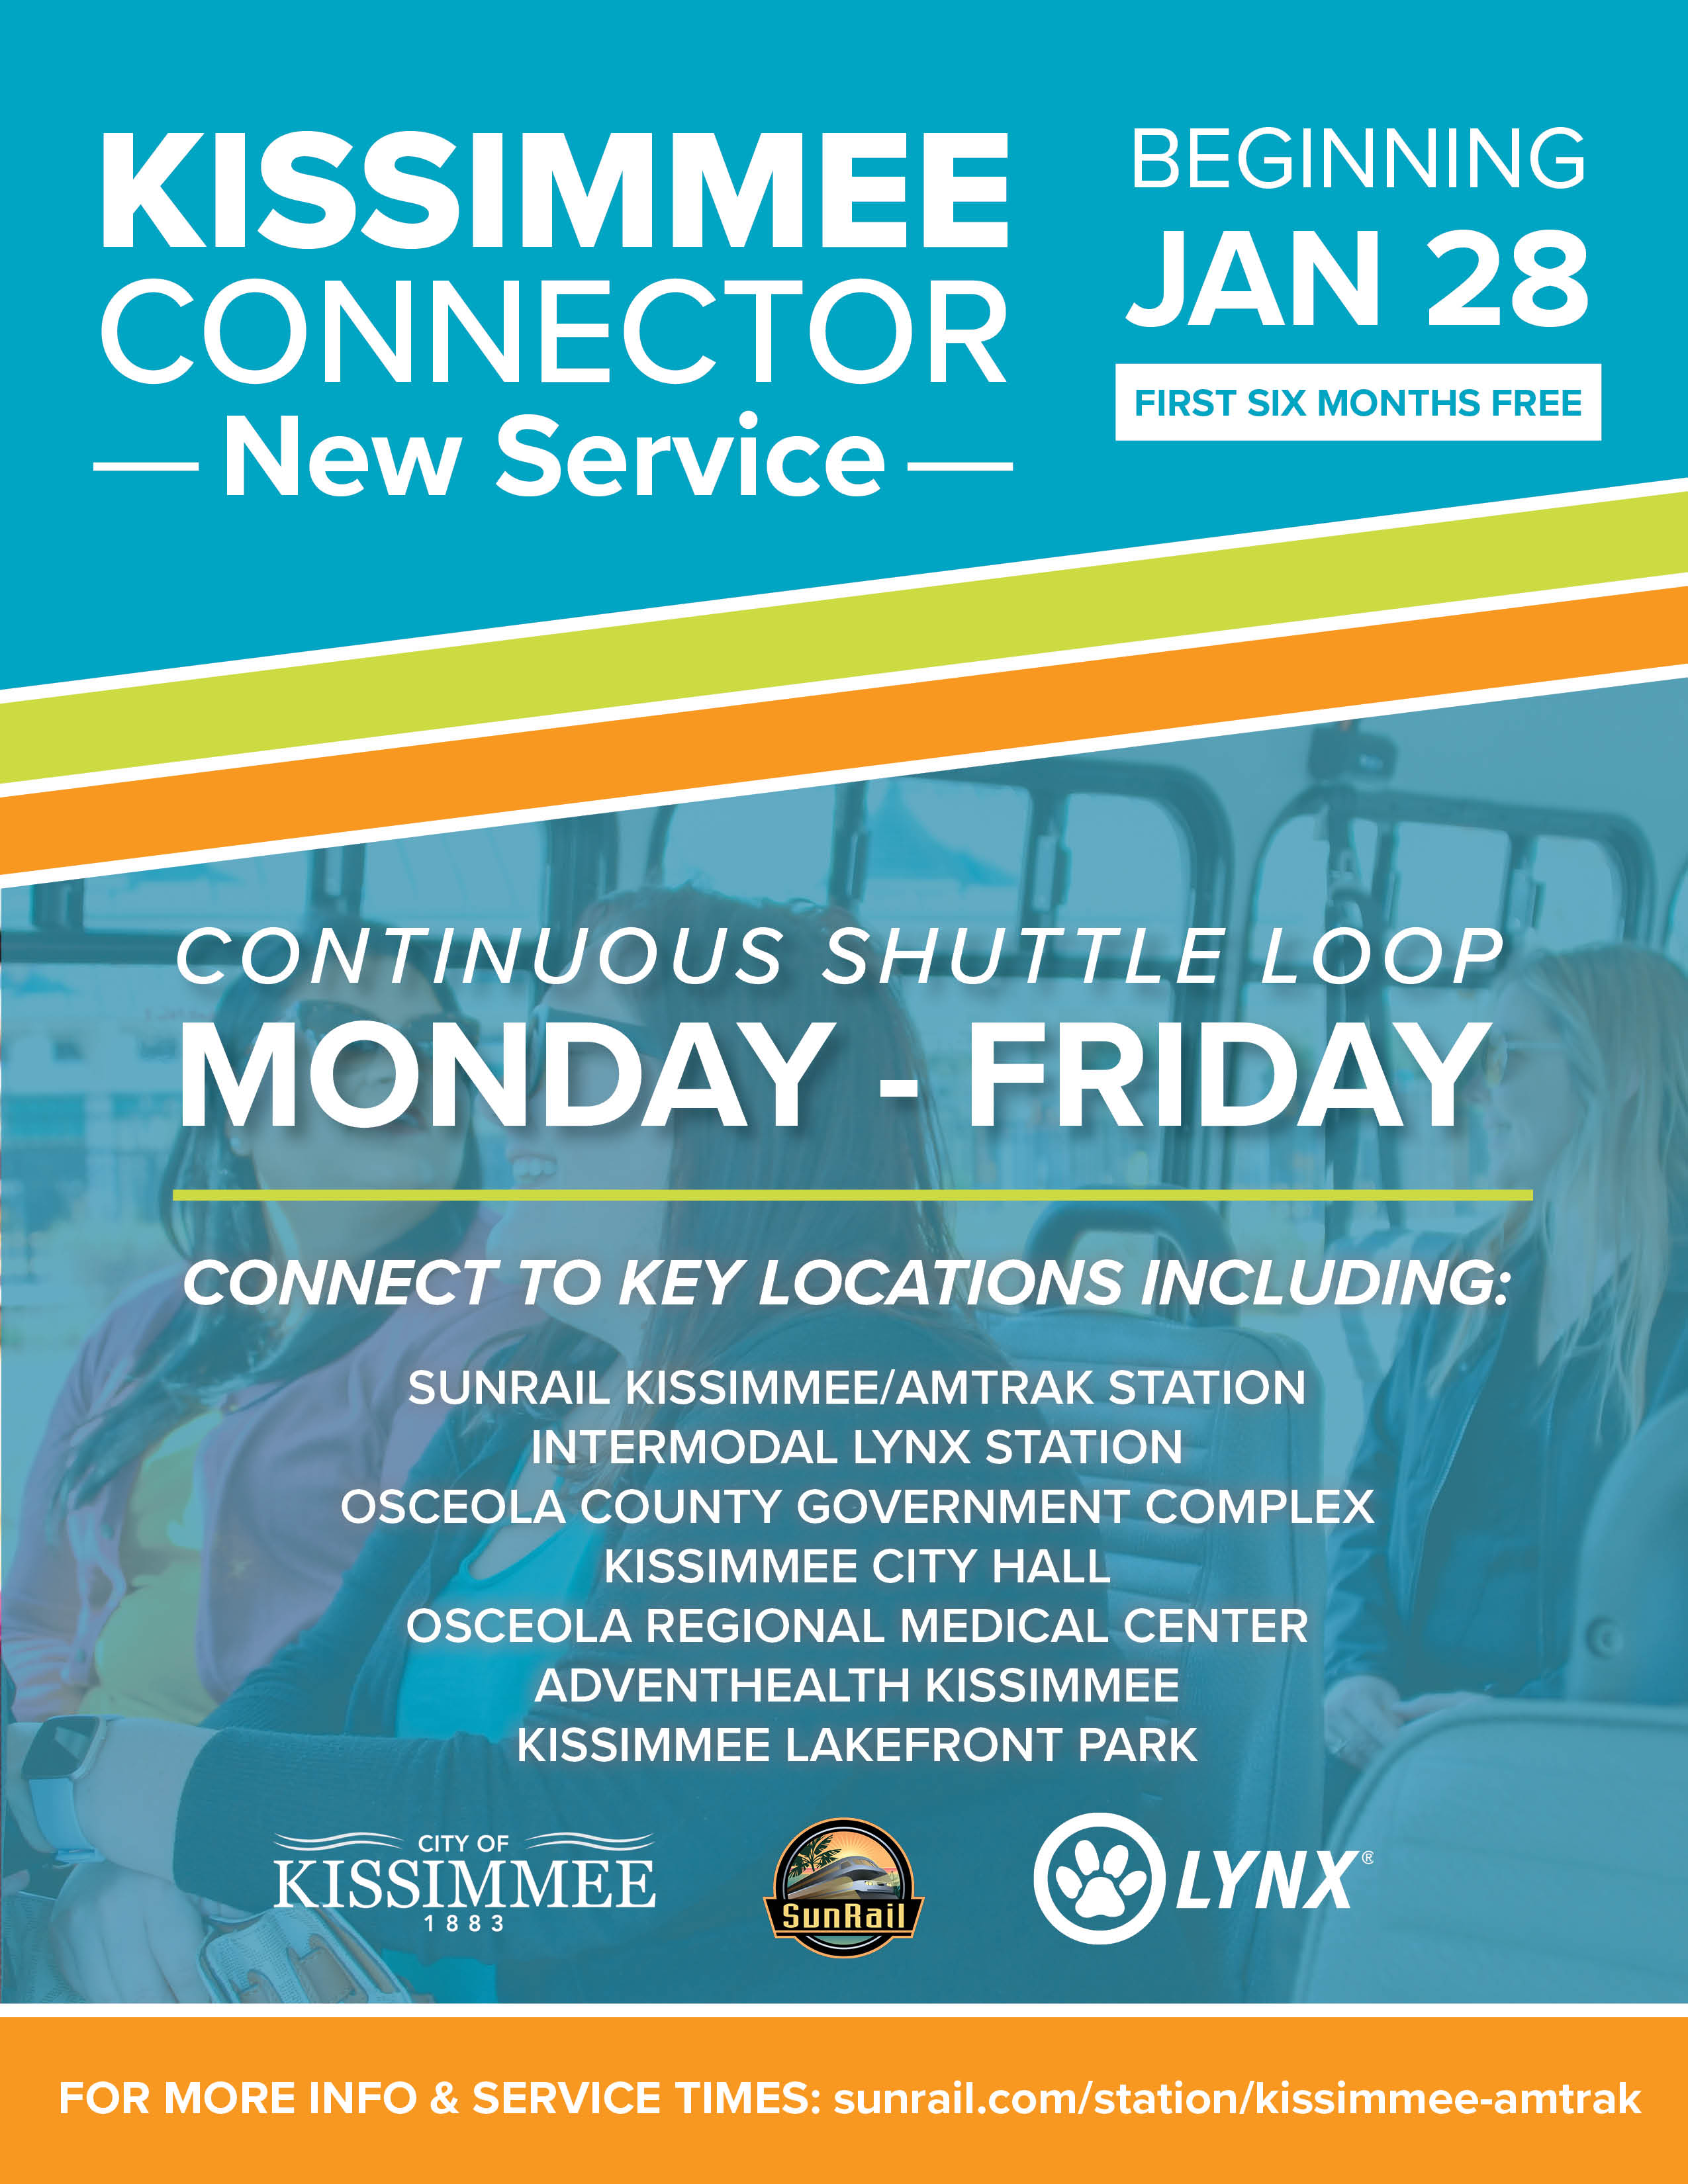 Kissimmee Connector New Service beginning January 28, 2019. Continuous shuttle loop Monday thru Friday. Connect to key locations including SunRail Kissimmee Station, Kissimmee LYNX Intermodal Station, Osceola County Government Complex, Kissimmee City Hall, Osceola Regions Medical Center, AdvantHealth Kissimmee and Kissimmee Lakefront Park.